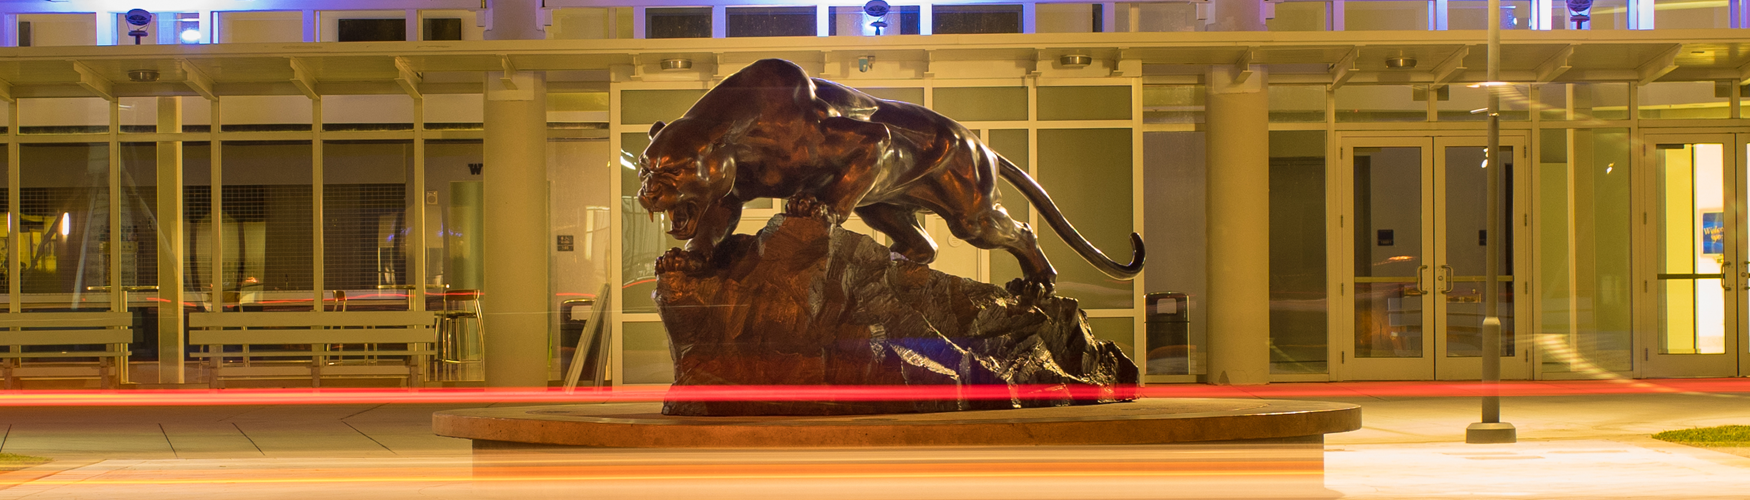 Panther statue arena